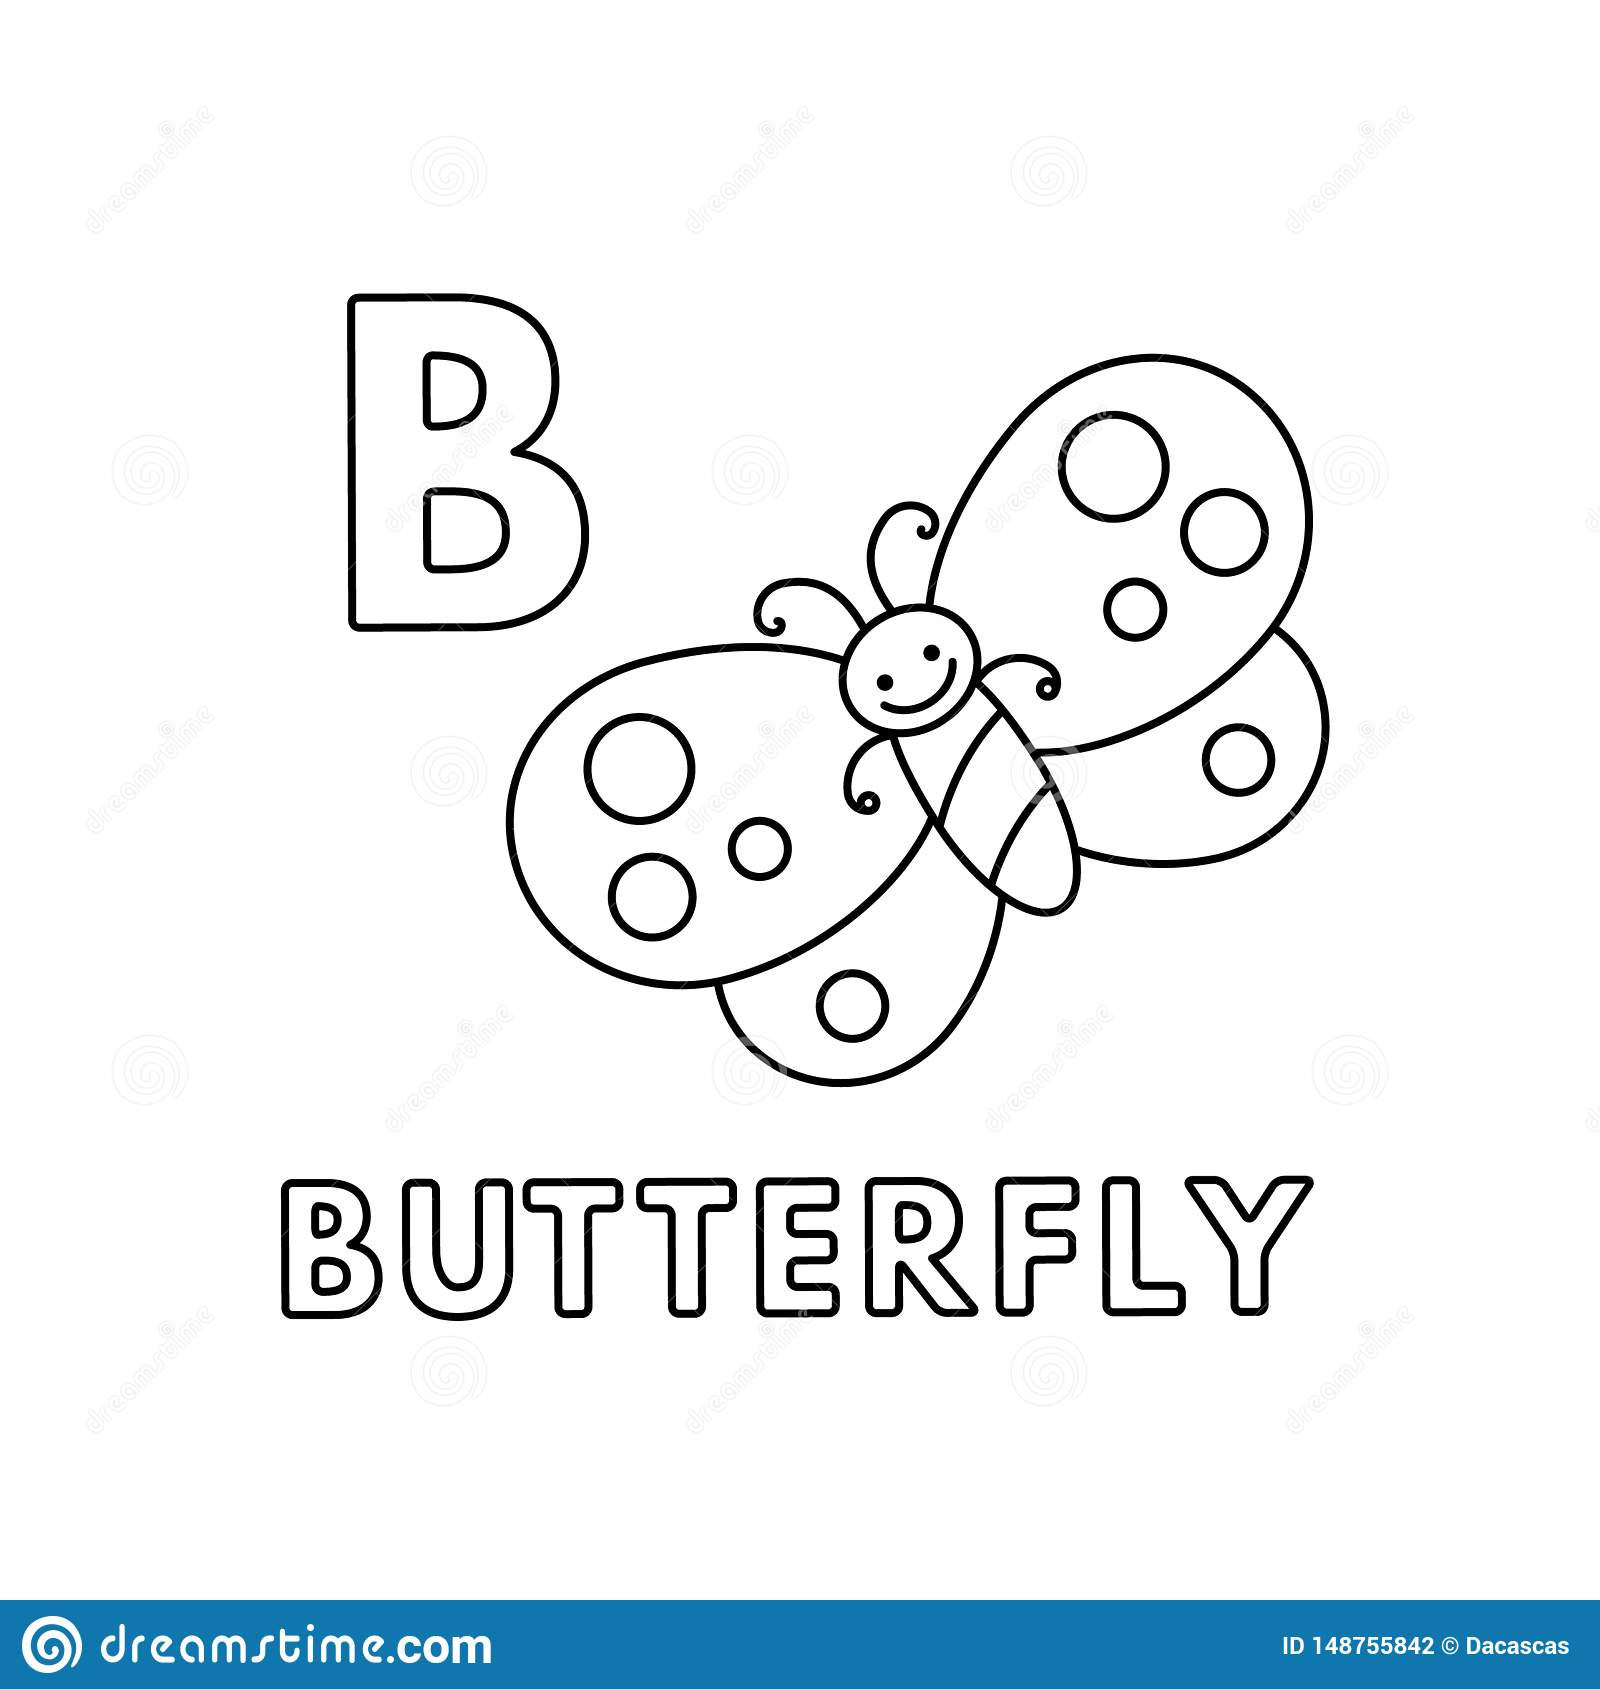 Butterfly coloring pages cute for kids, printable free | 1689x1600